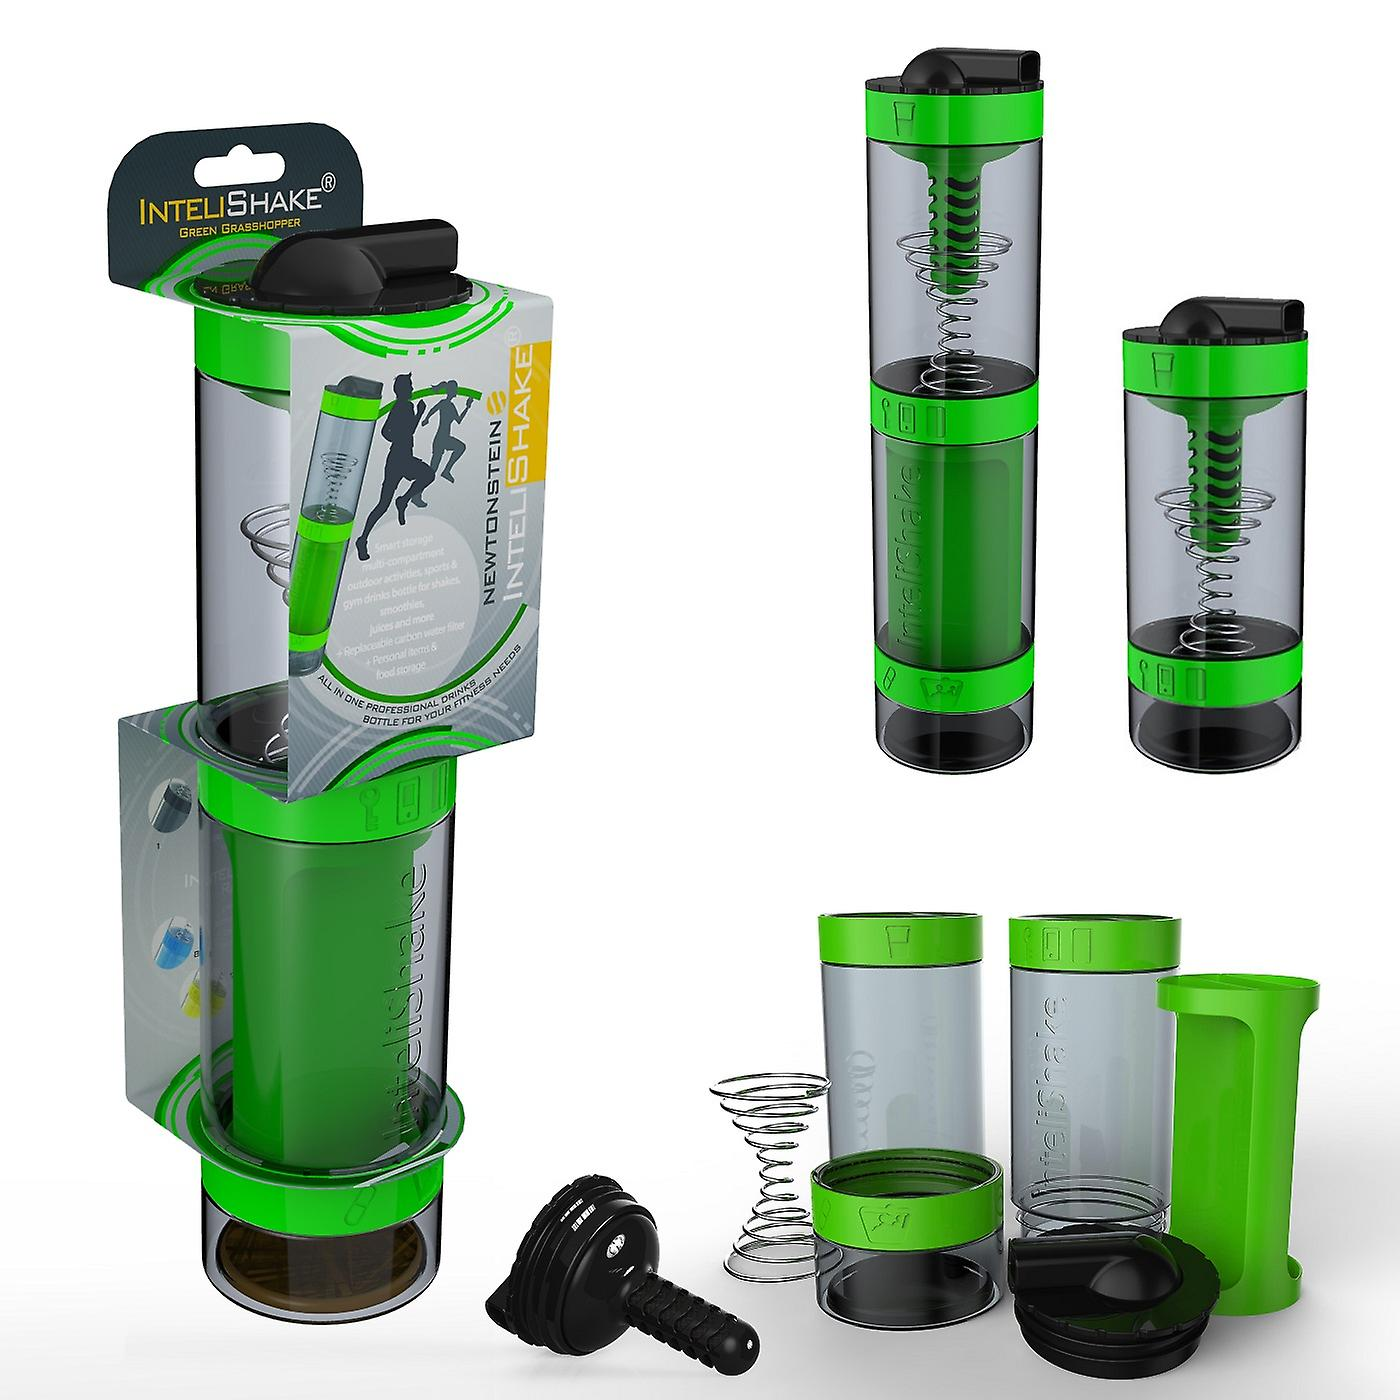 Intelishake  Grasshopper Green - Shaker Bottle Multi-Compartment Protein/Workout/Juice with Water Carbon Filter for Sports Exercise & Gym